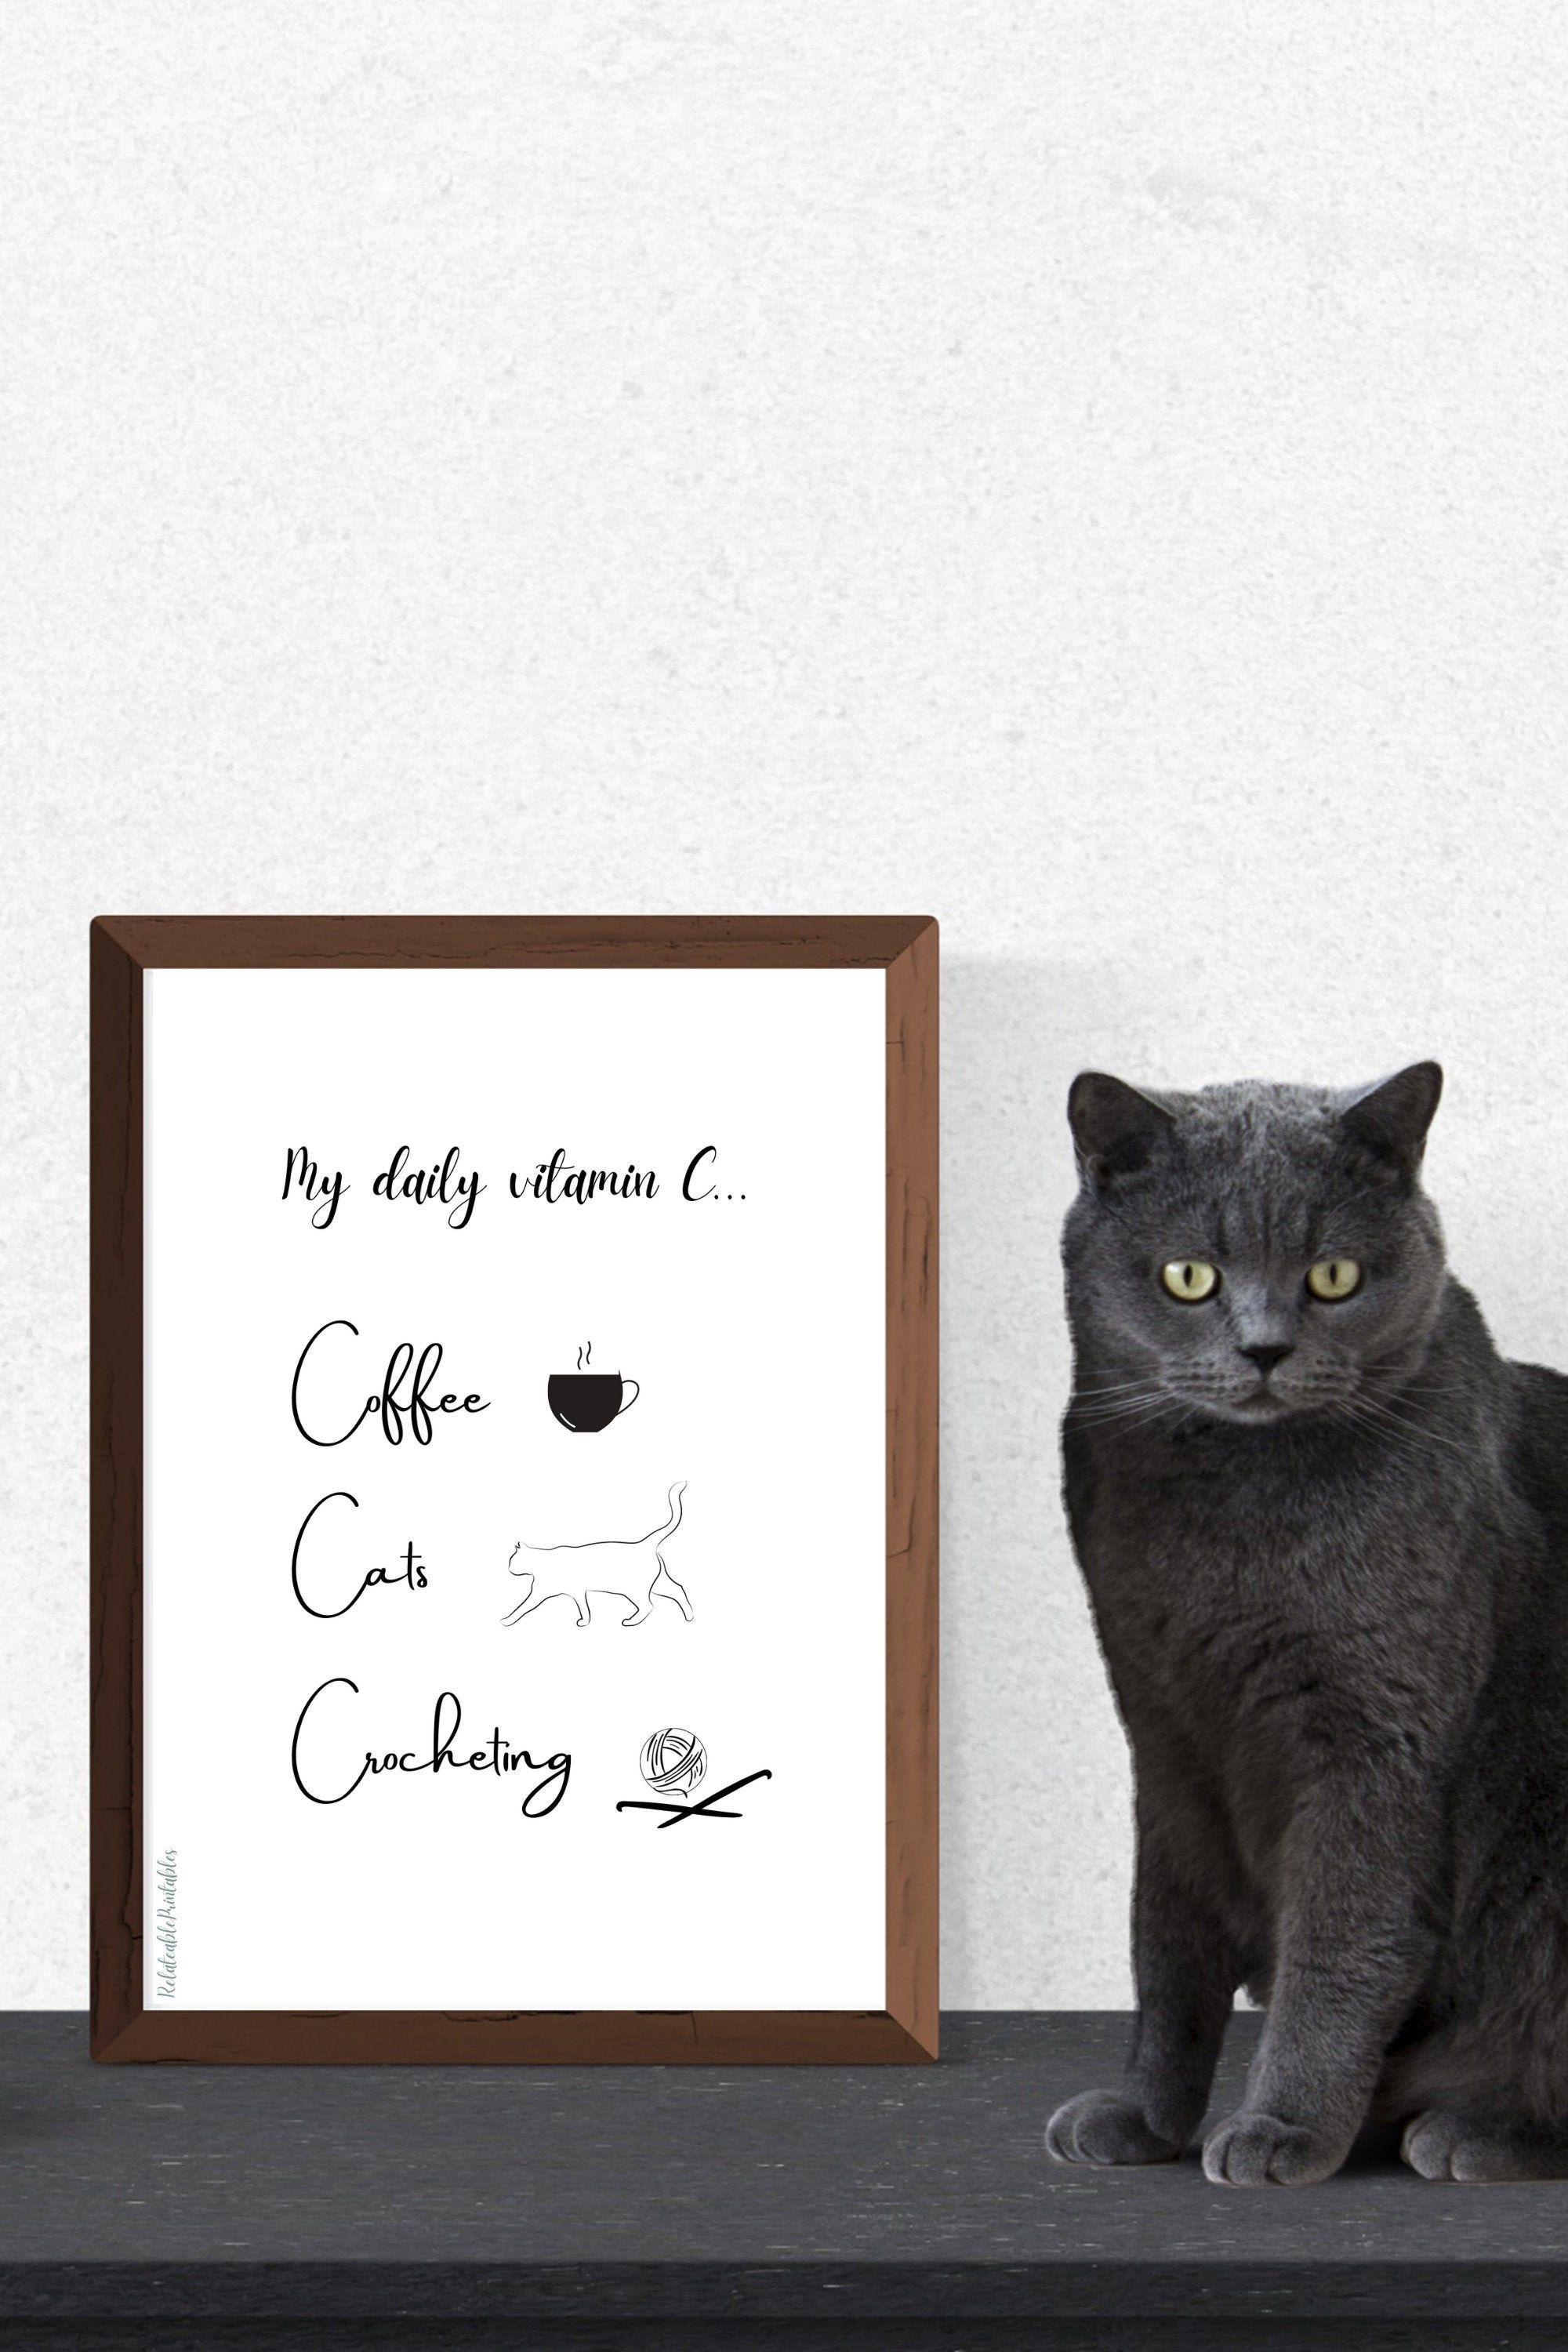 Printable Wall Art Daily Vitamin C: Coffee, Cats, Crocheting, in Simple Black And White